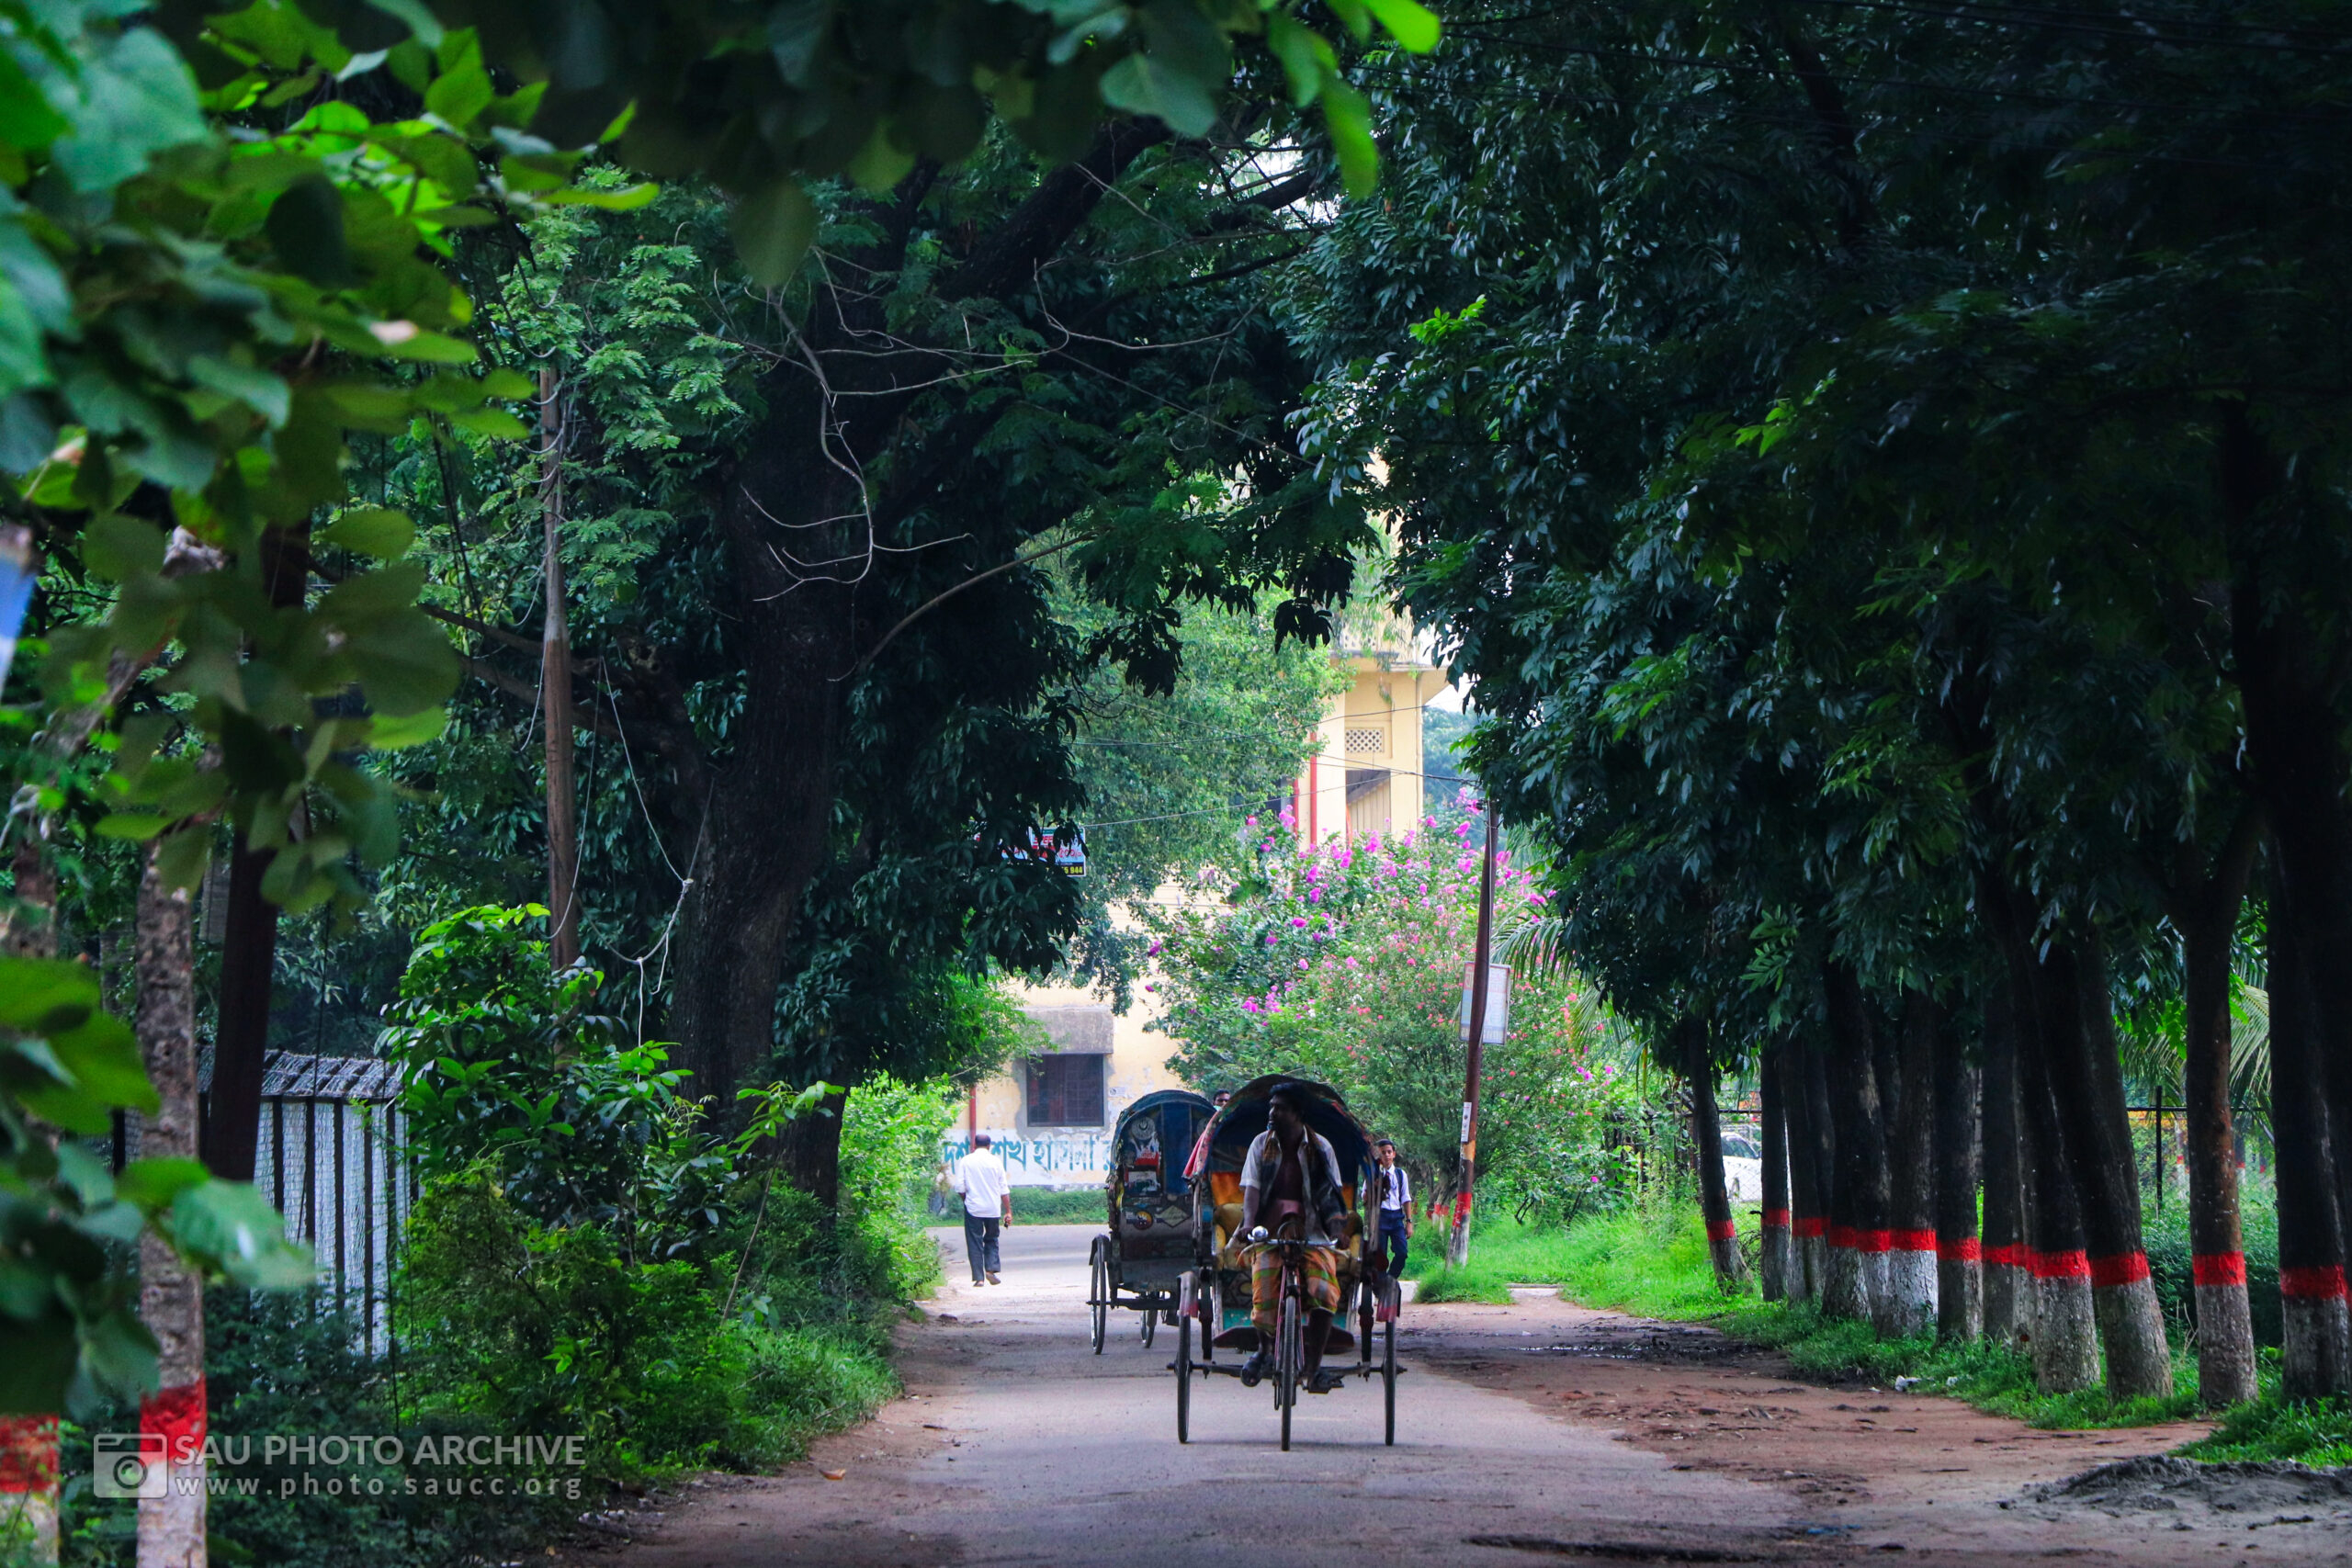 A Road photo is captured by Md. Nazmus Sakib Anik at Sher-e-Bangla Agricultural University titled Road of Agriculture Faculty to Sheikh Kamal Building